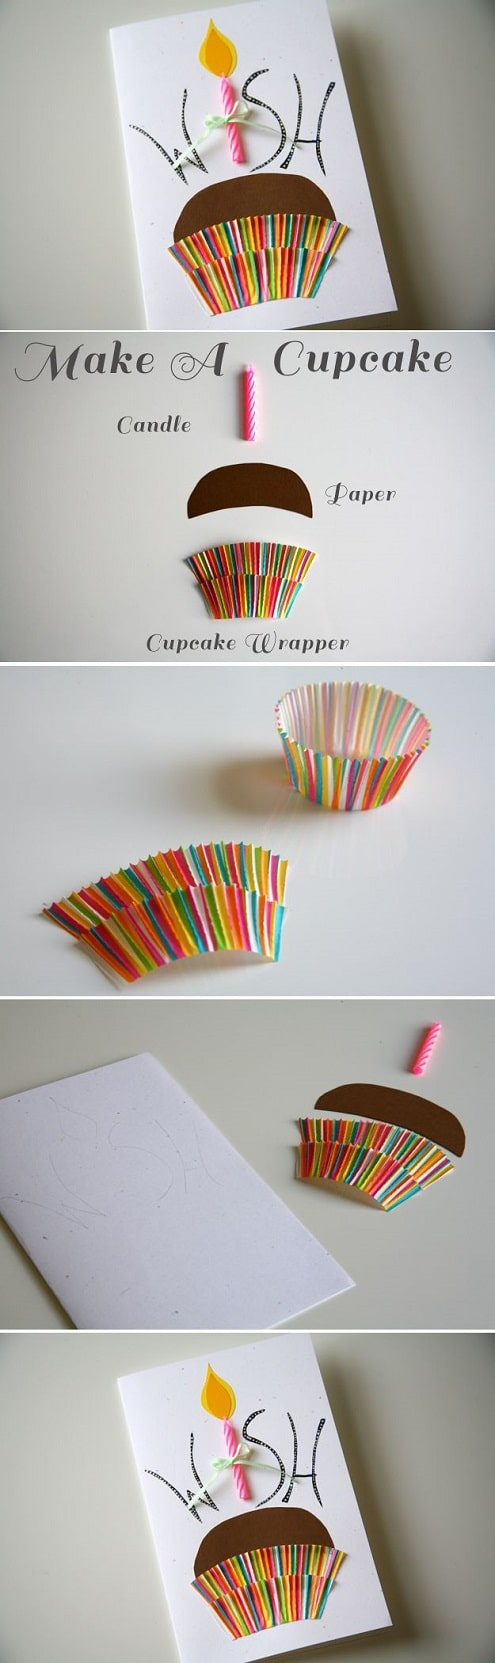 Ideas For Making Birthday Cards For Friends 10 Extraordinary Handmade Birthday Card Ideas The Smallest Step